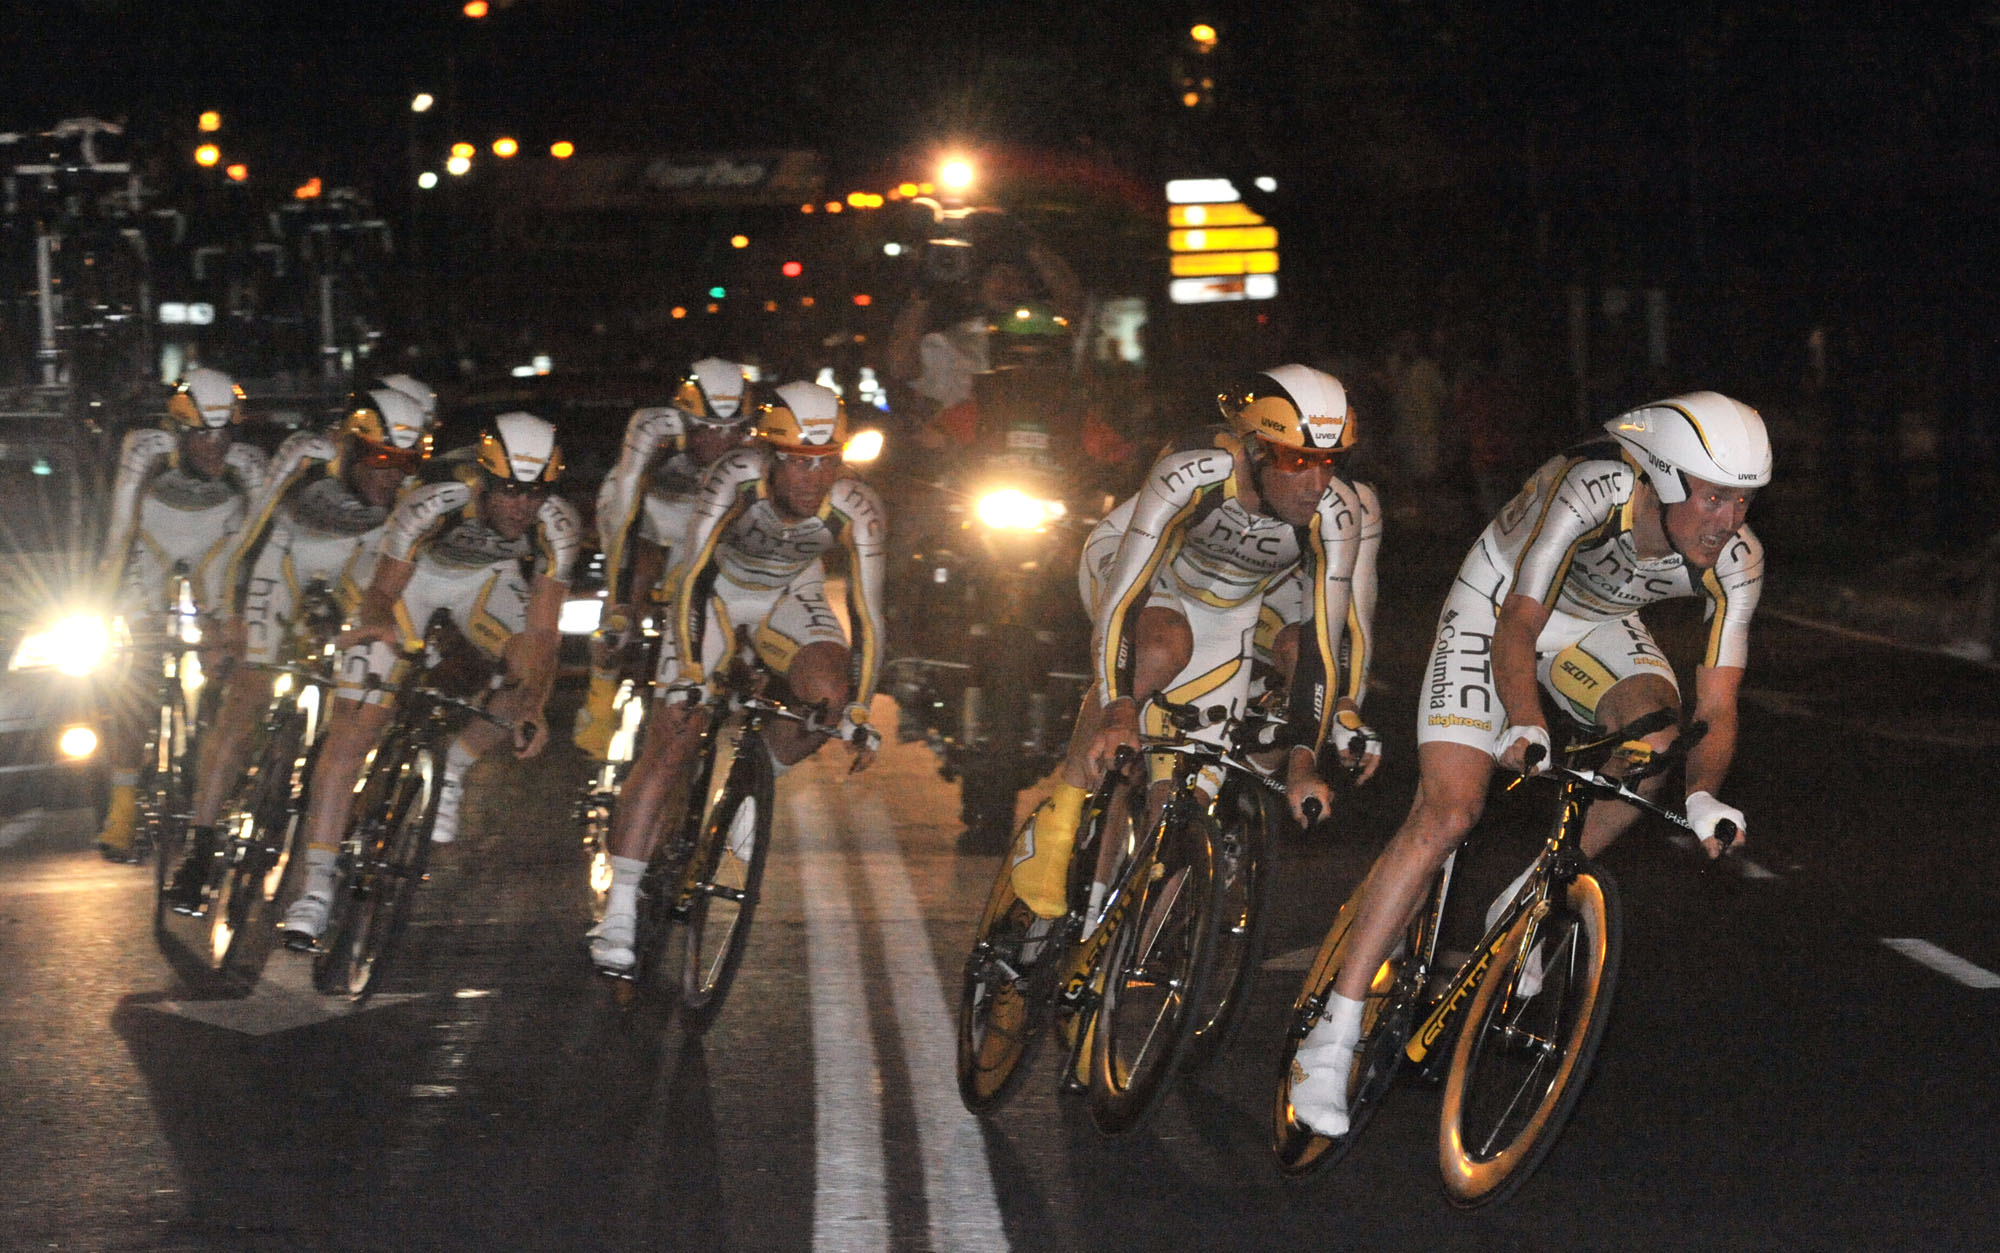 HTC-Columbia win the night-time opening team time trial, Vuelta a Espana 2010